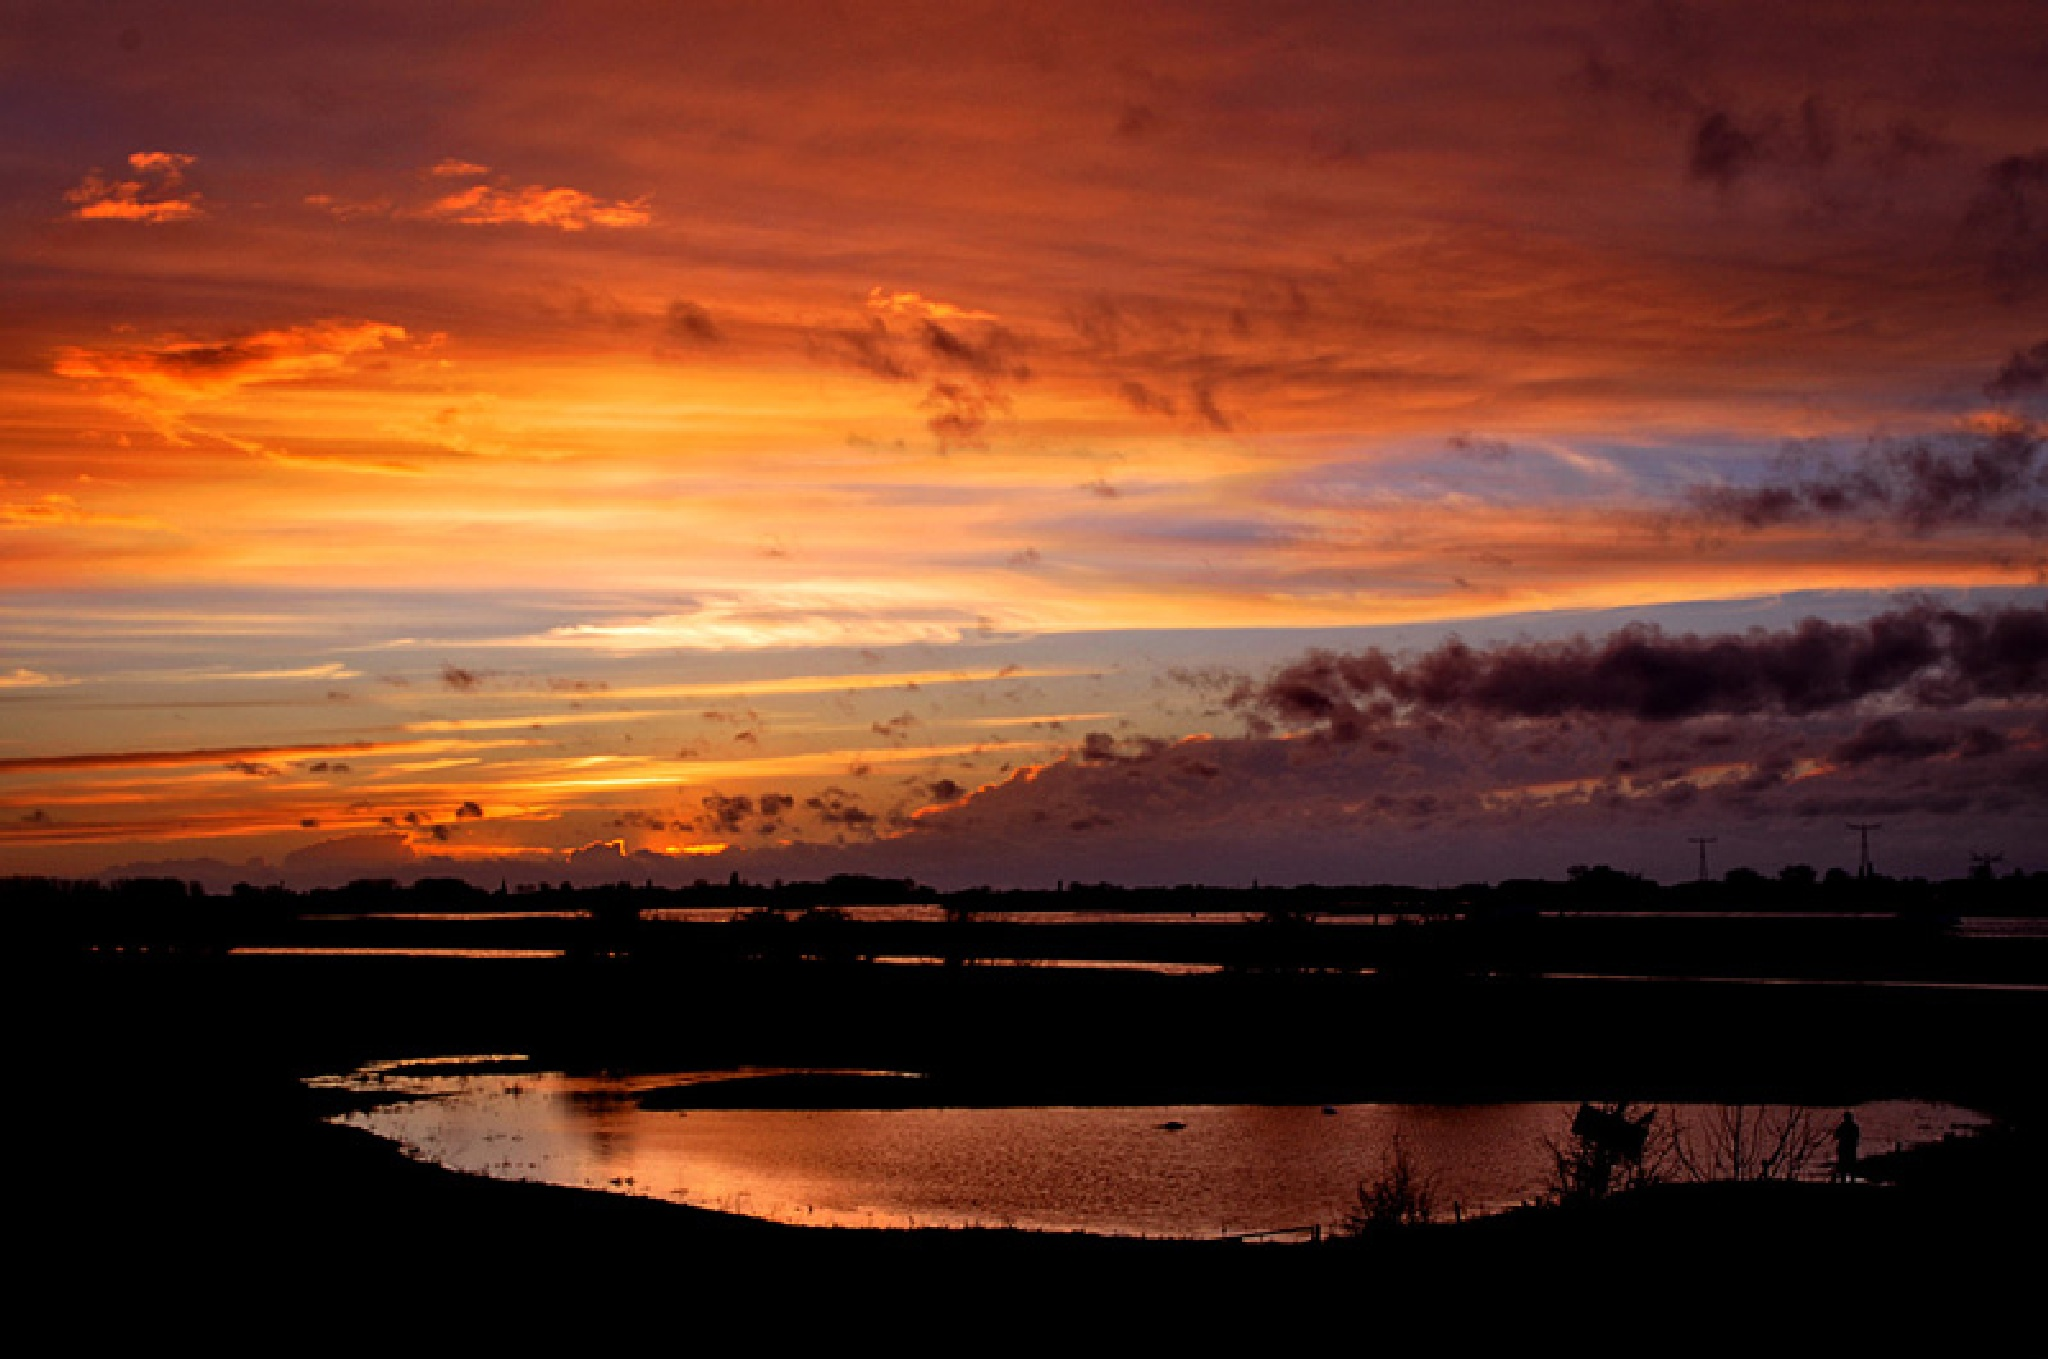 sunset on the riverbanks by bep.roggeveen